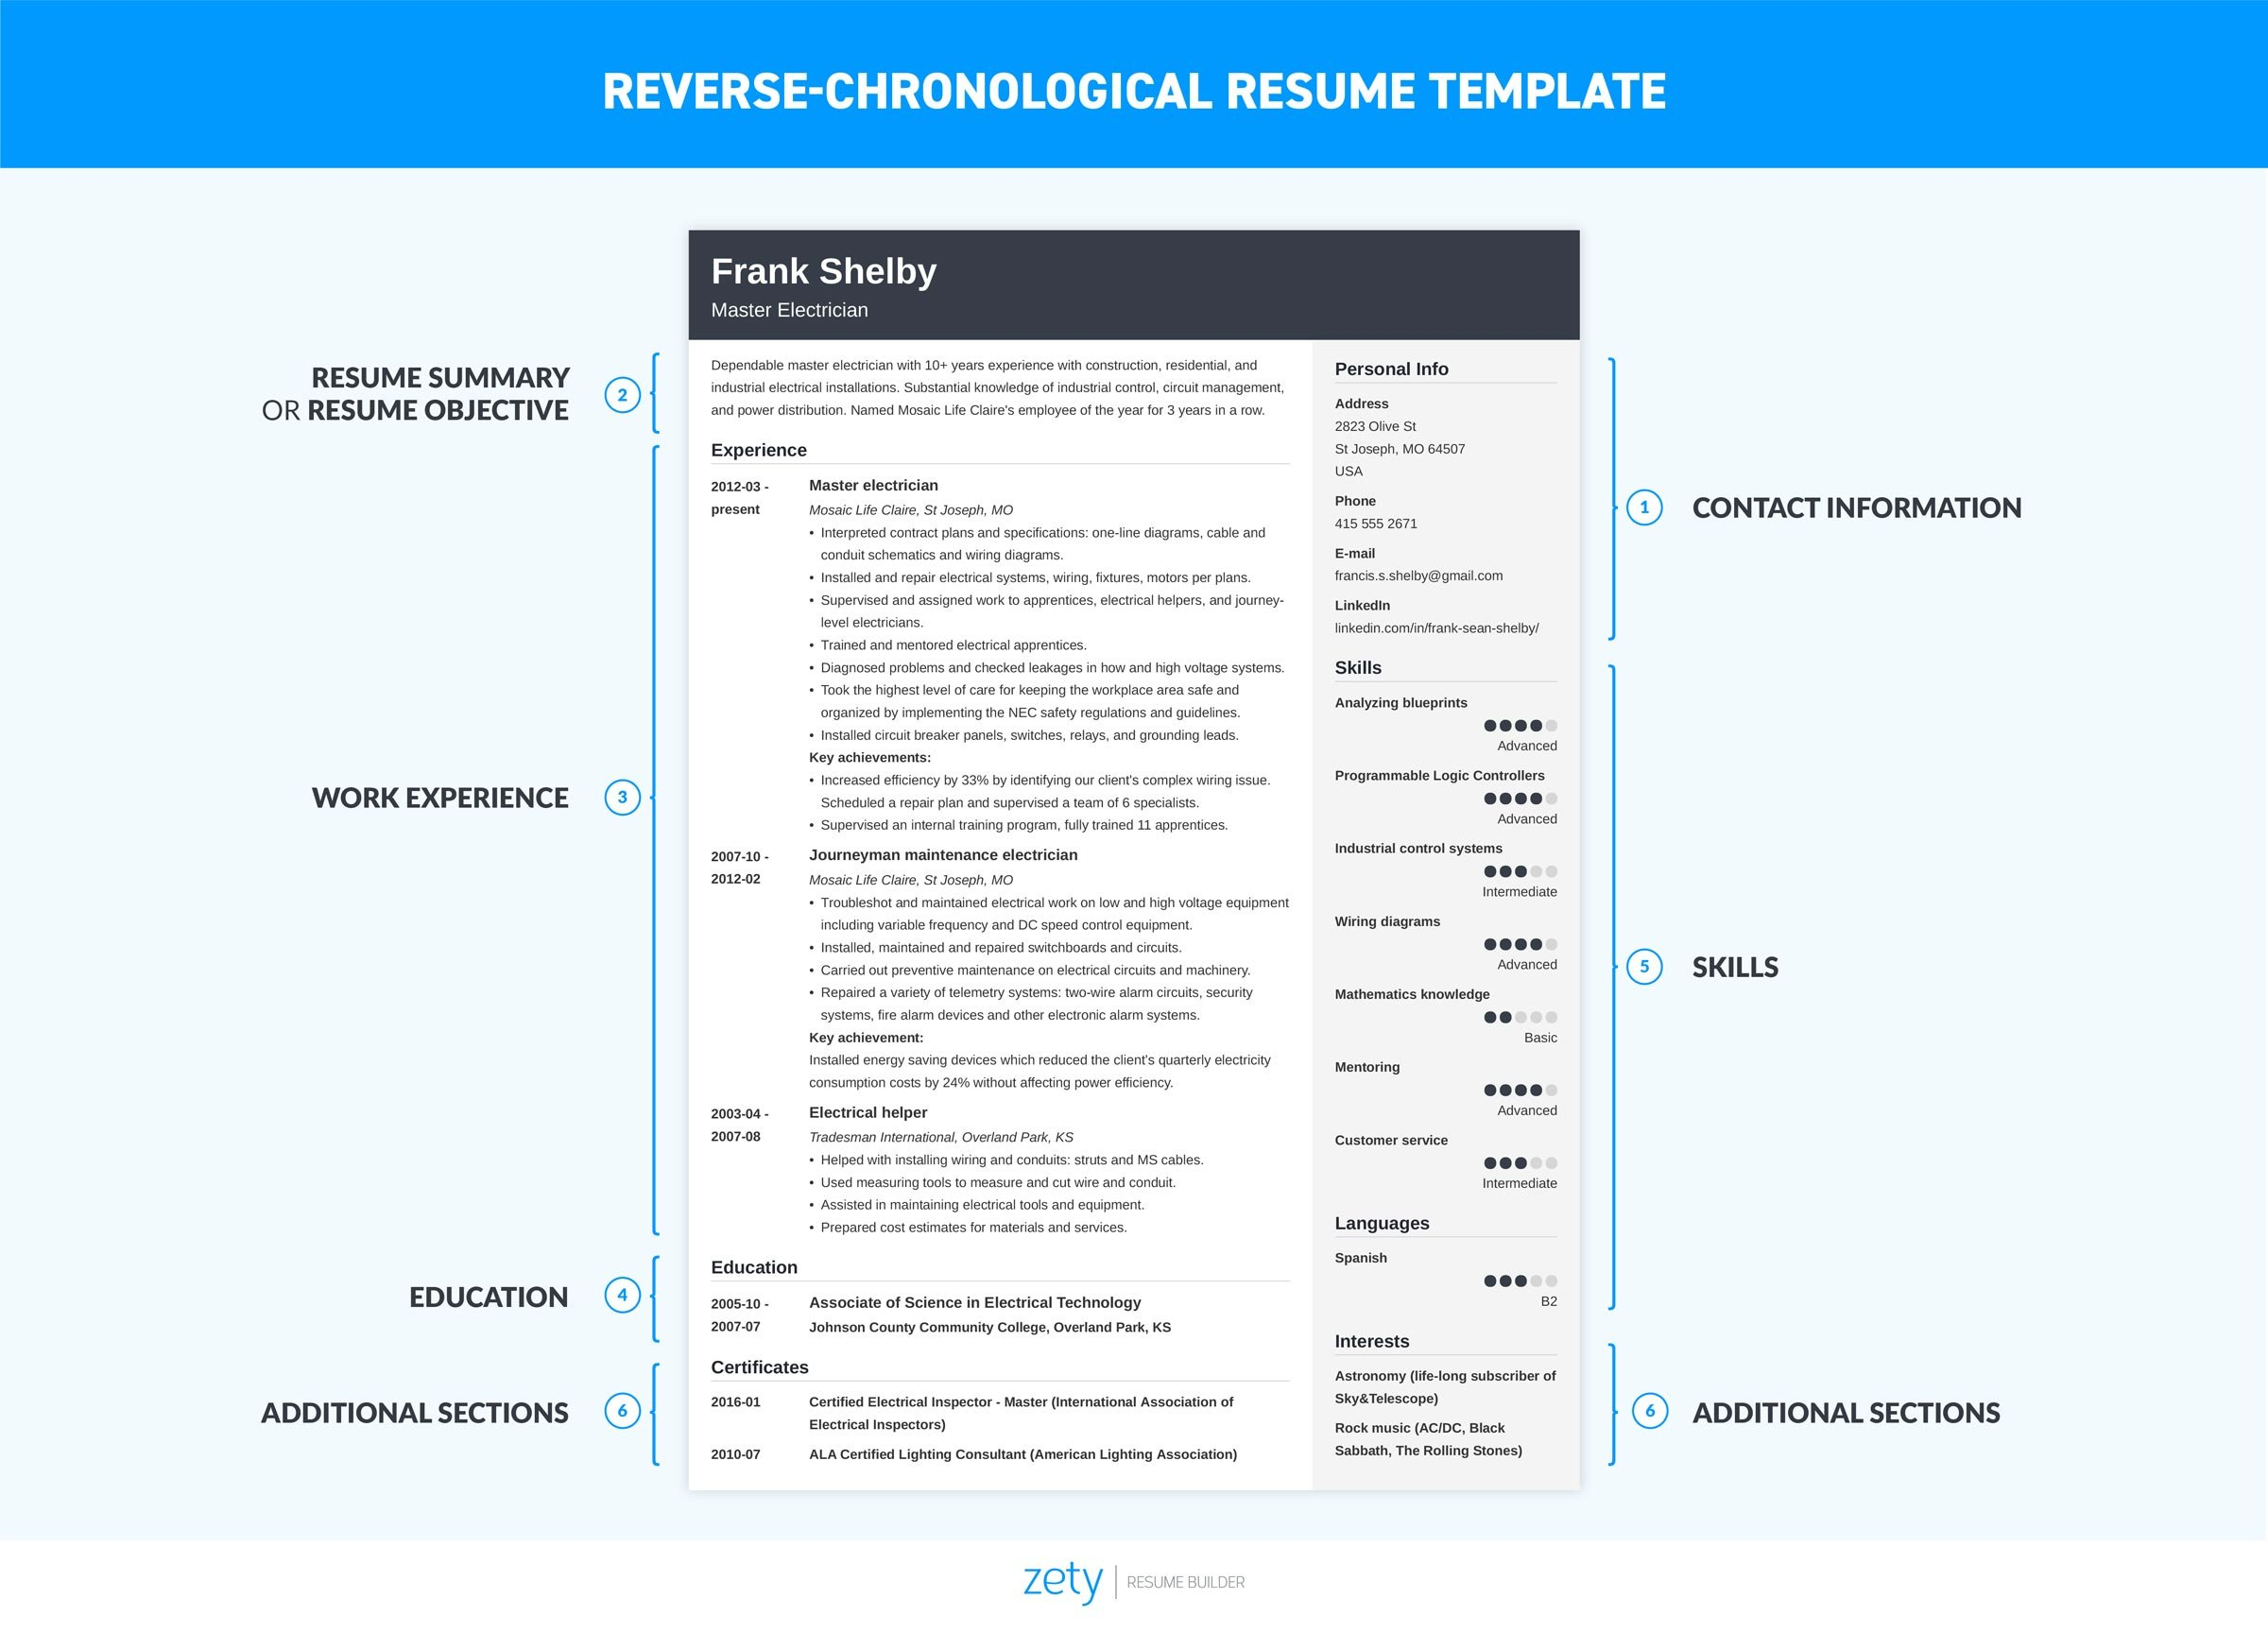 How To Write A Chronological Resume Infographic  Example Of A Chronological Resume